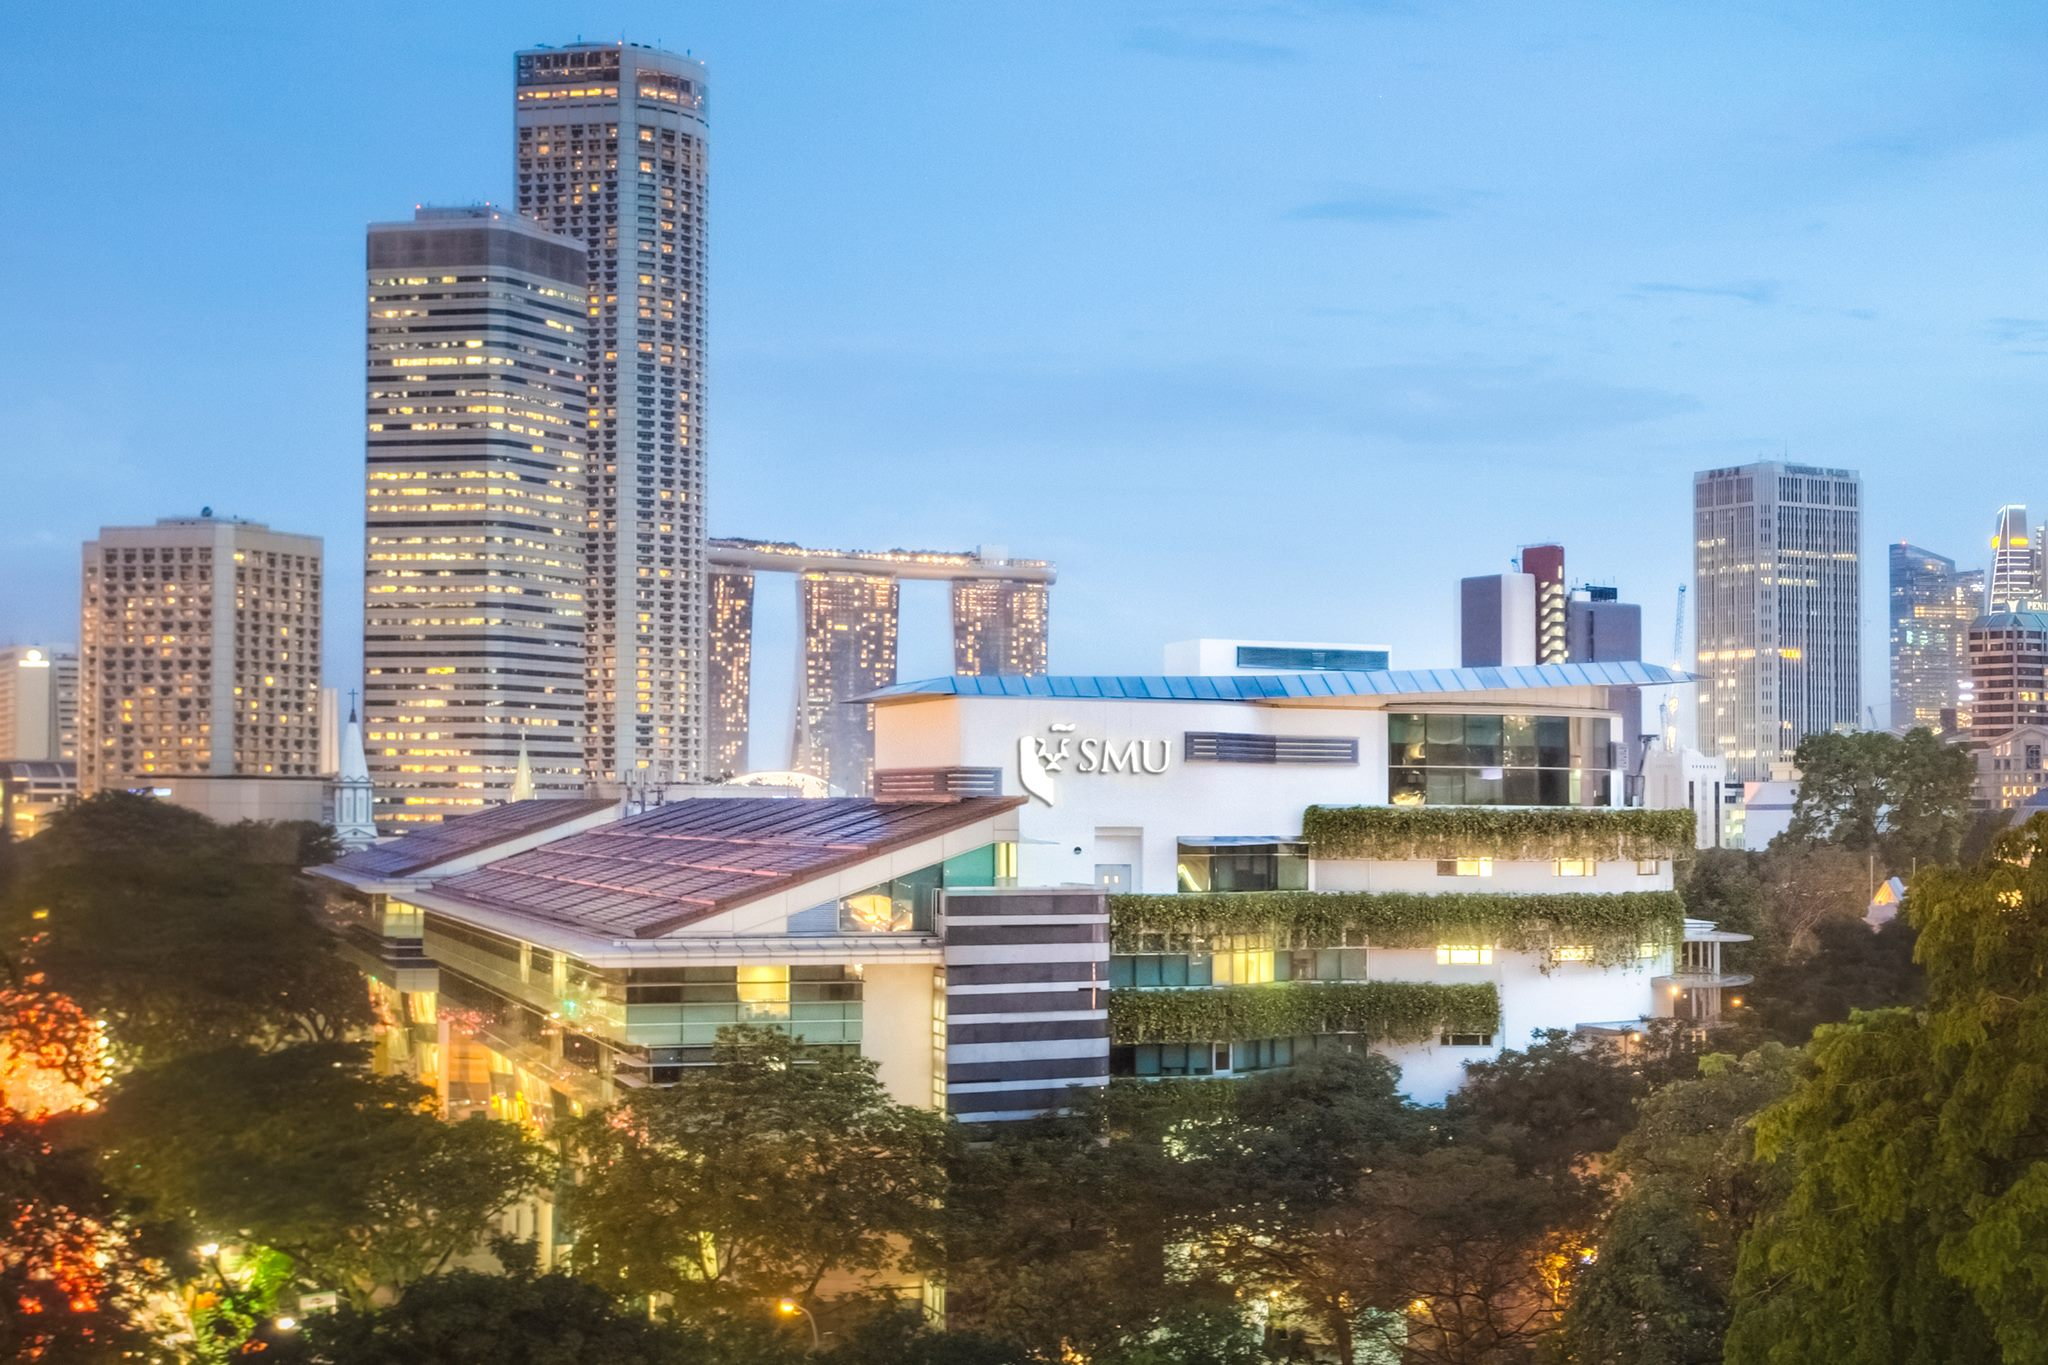 Lee Kong Chian School of Business – SMU Campus